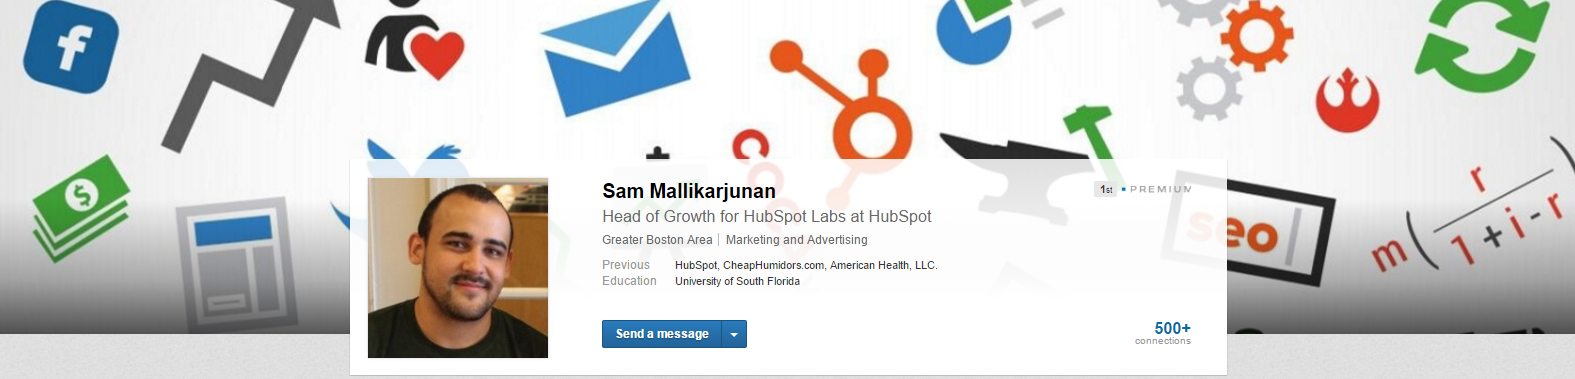 sam-mallikarjunan-linkedin-background